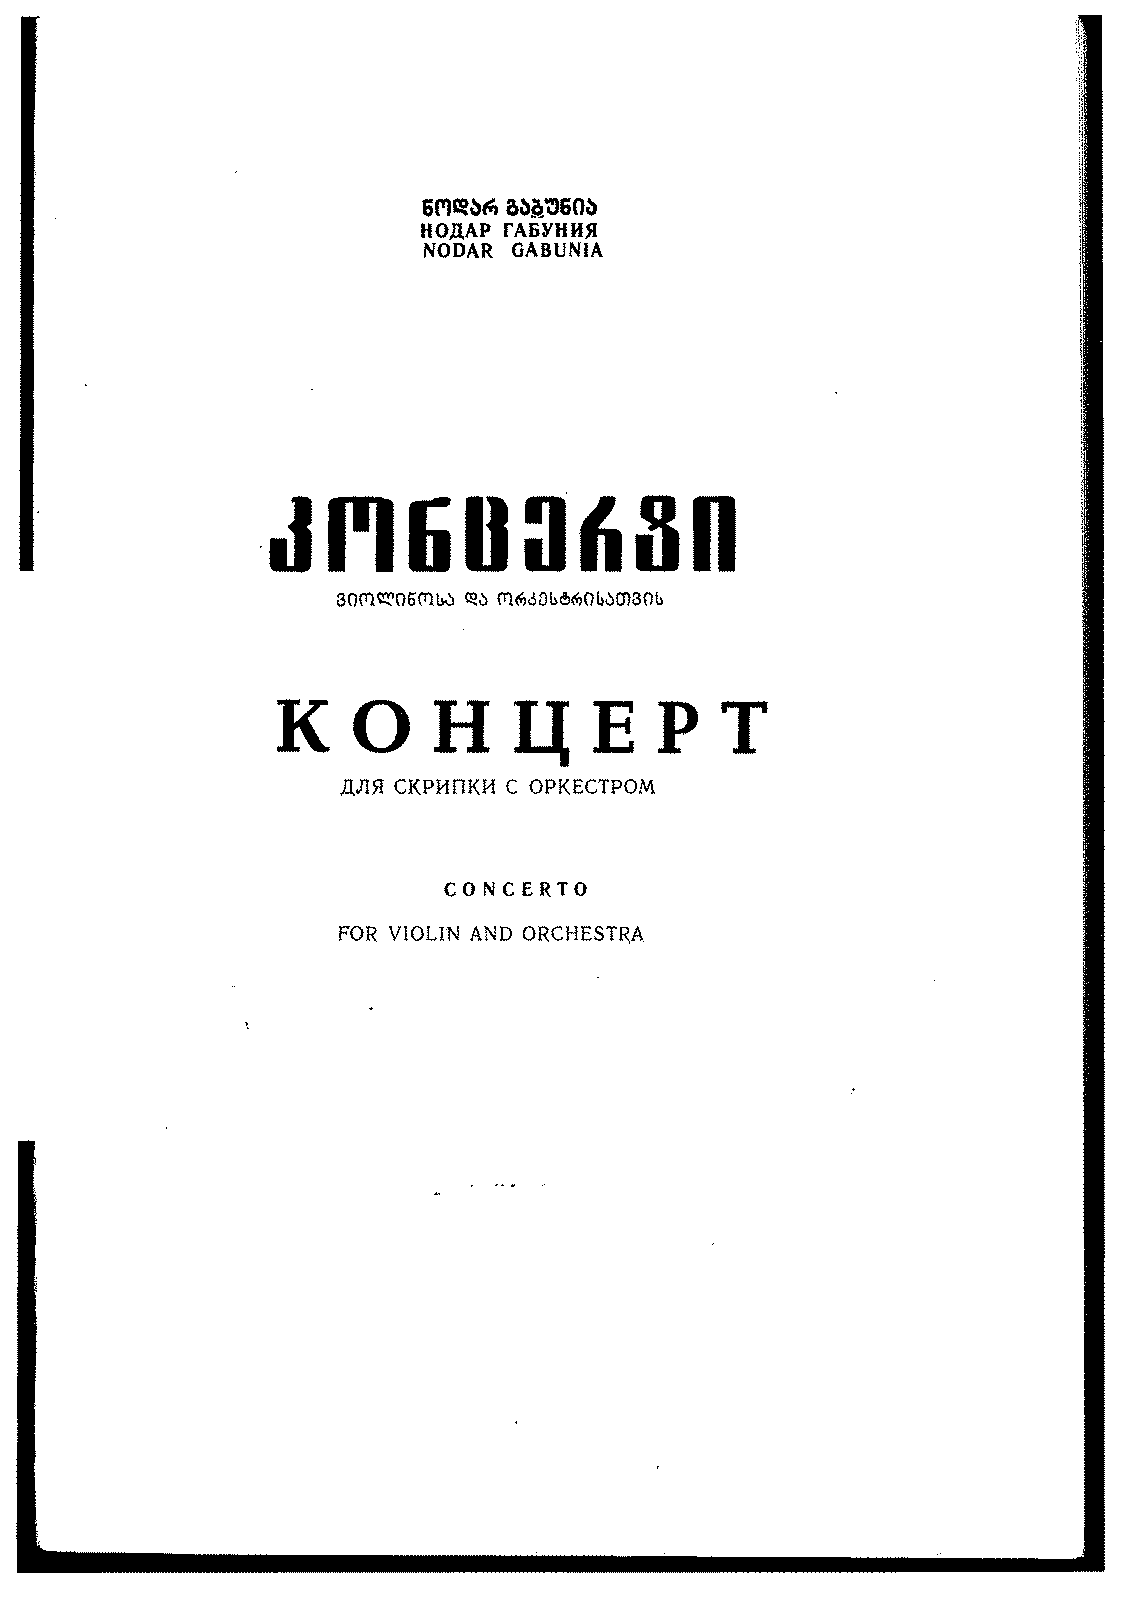 PMLP232128-concerto for violin and orchestra.pdf